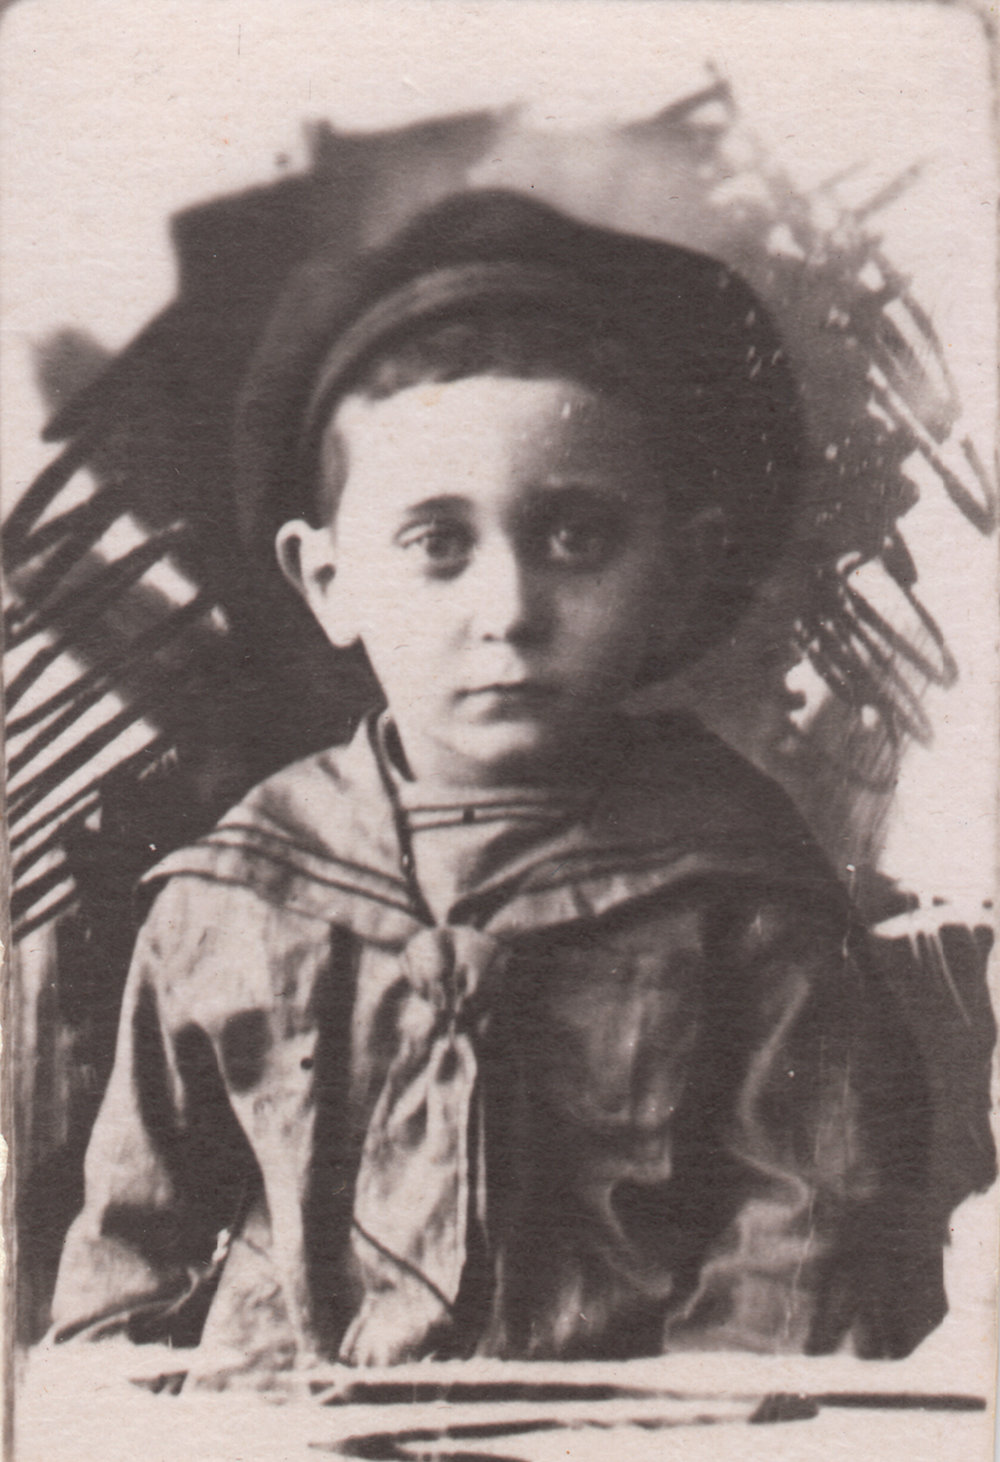 Four-year-old Yuliy Pinsky. Kyiv, Ukraine, 1927